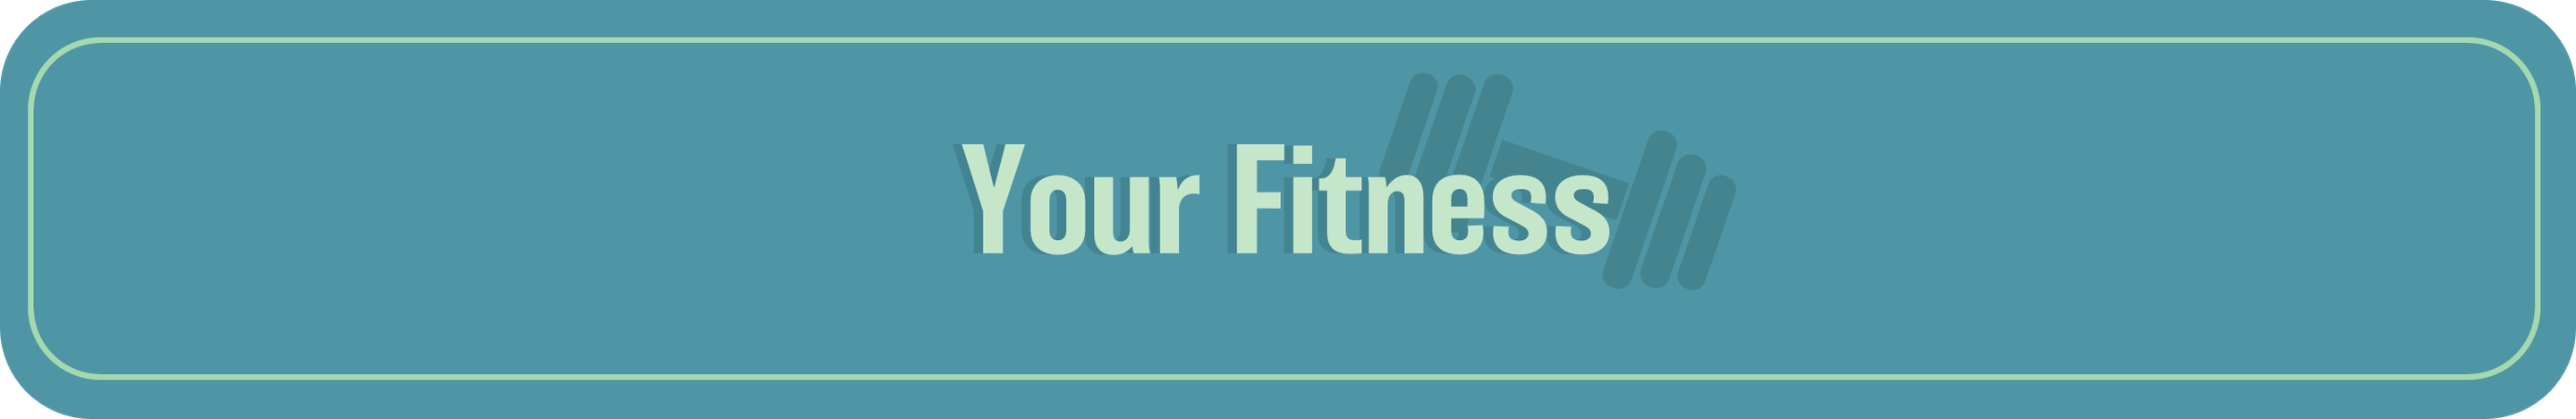 teal banner with light green text your fitness and drop shadow of a dumbbell